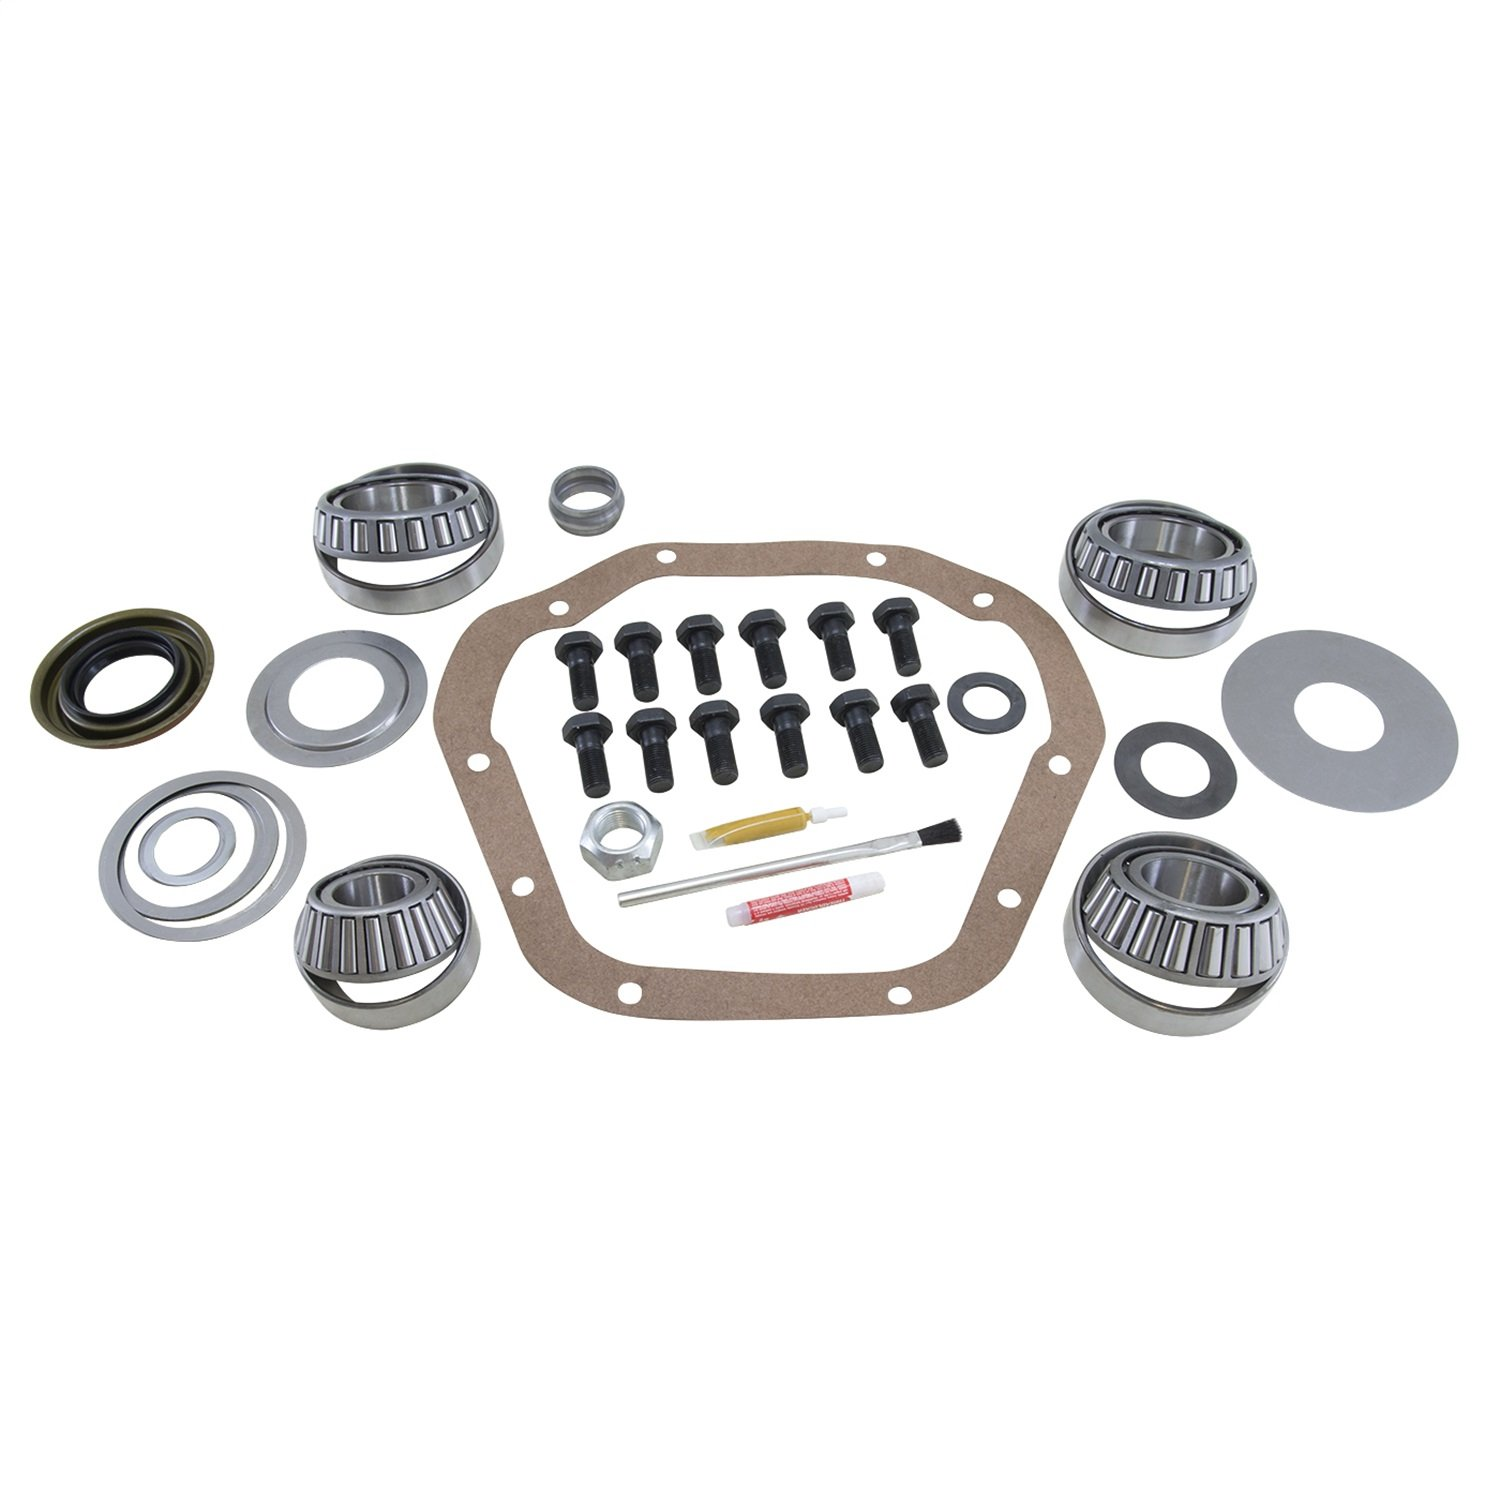 USA Standard Gear (ZK D60-F) Master Overhaul Kit for Dana 60 Front Differential by USA Standard Gear